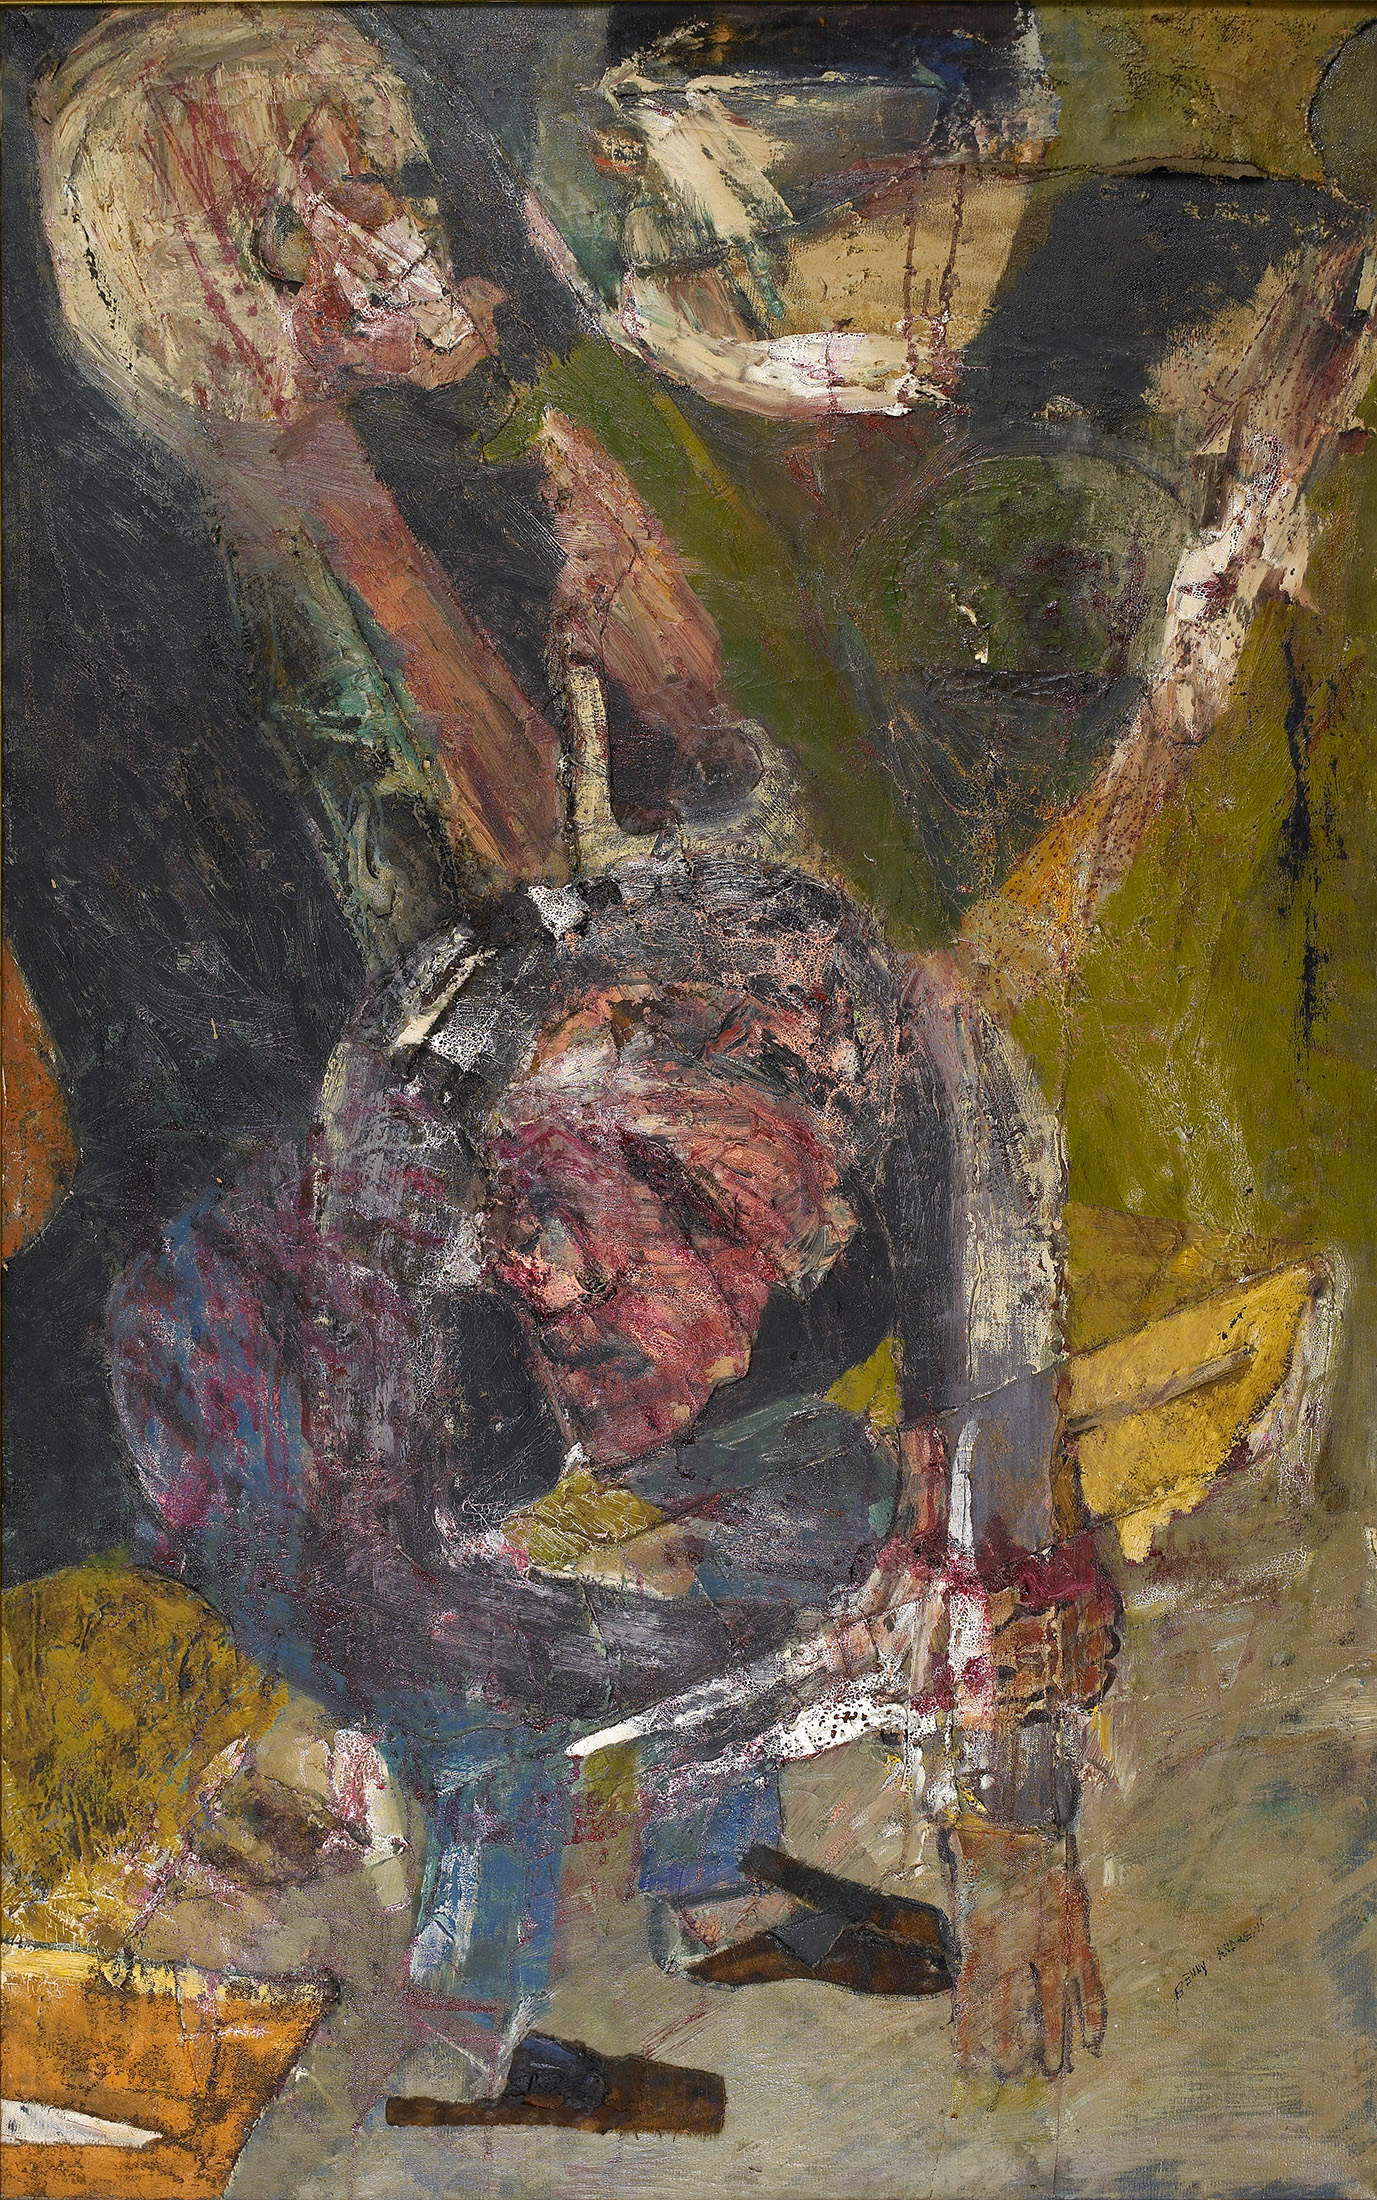 Untitled  , c. 1960s, collage on canvas, 48 x 30 inches